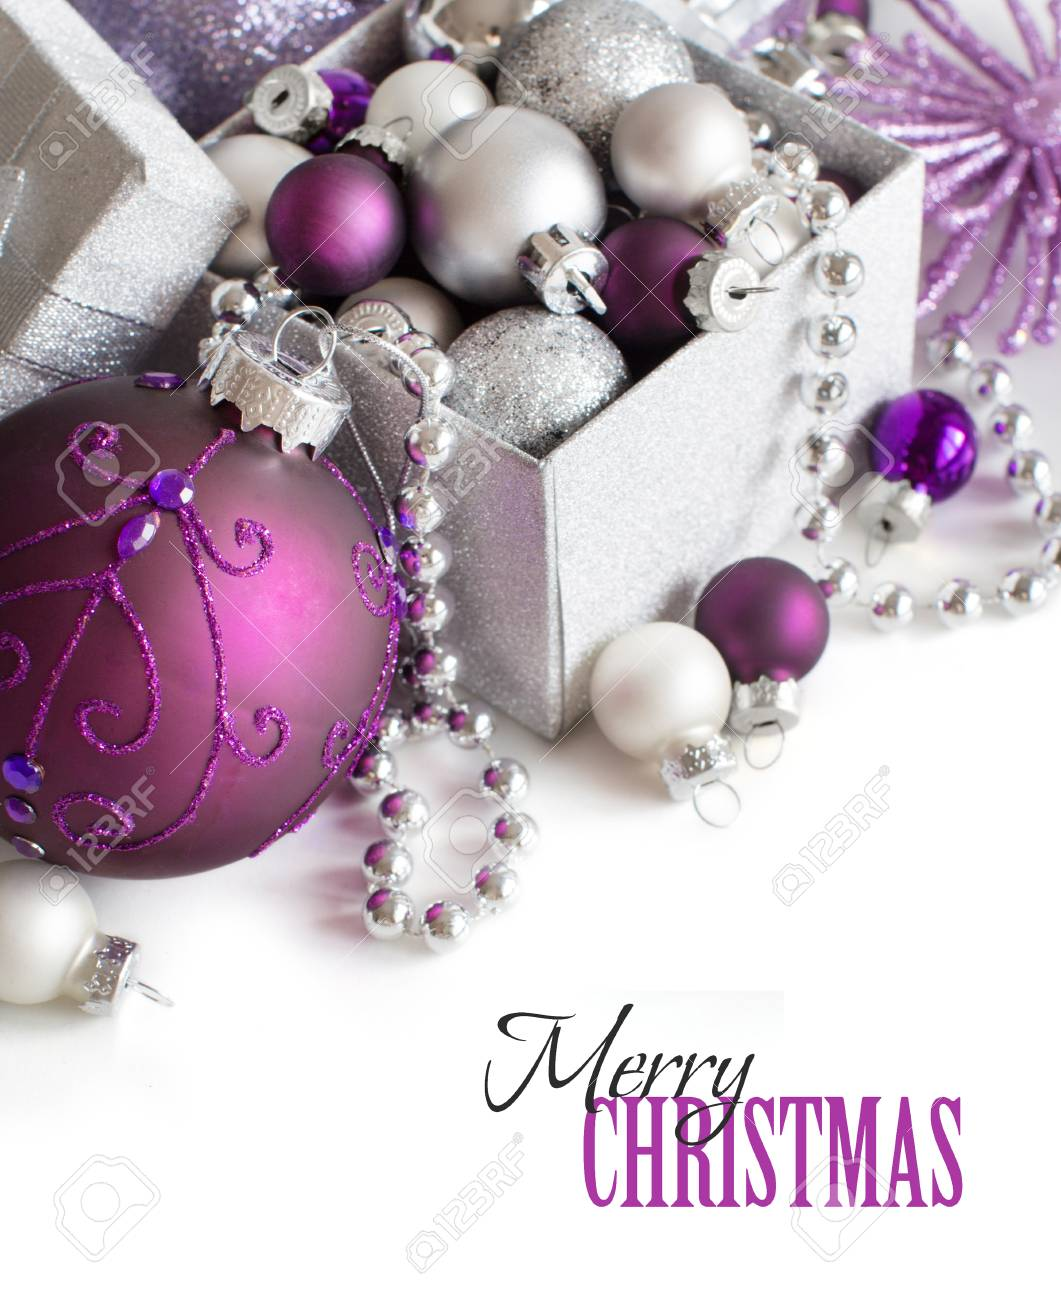 silver and purple christmas ornaments border on white background stock photo 51360549